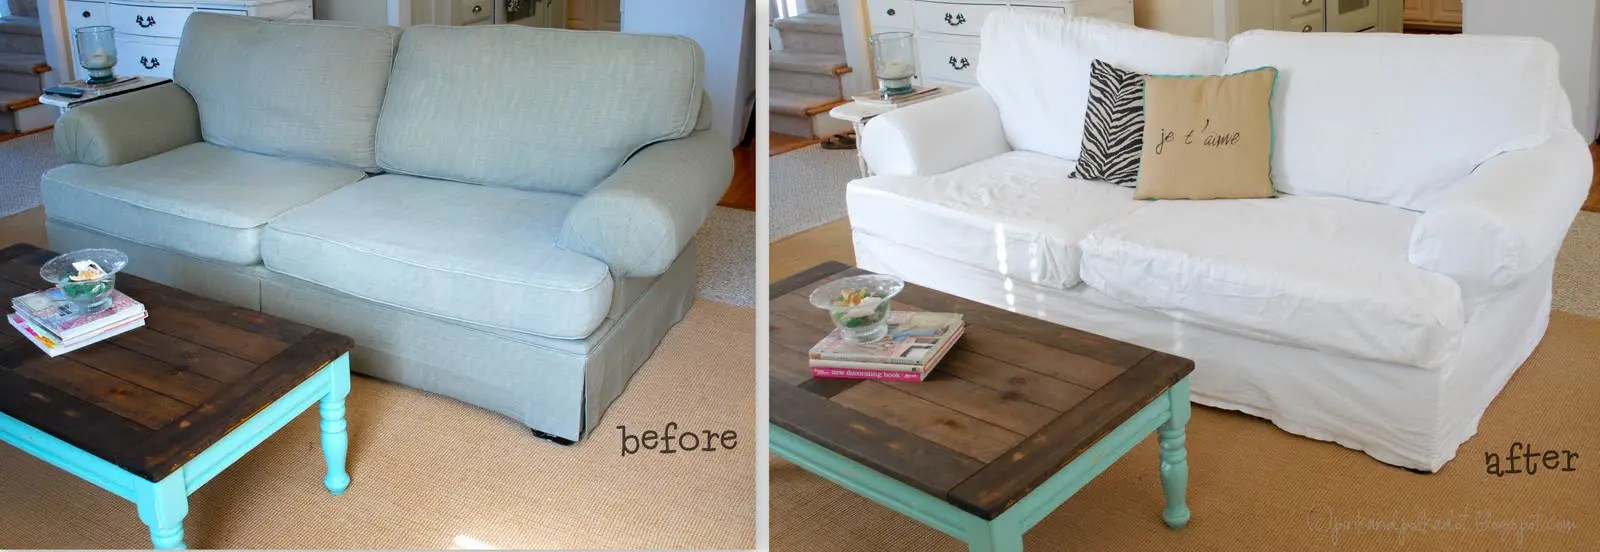 how to make a slipcover for sofa rachel classic natural makeover your furniture with custom slipcovers homejelly i remember this couch